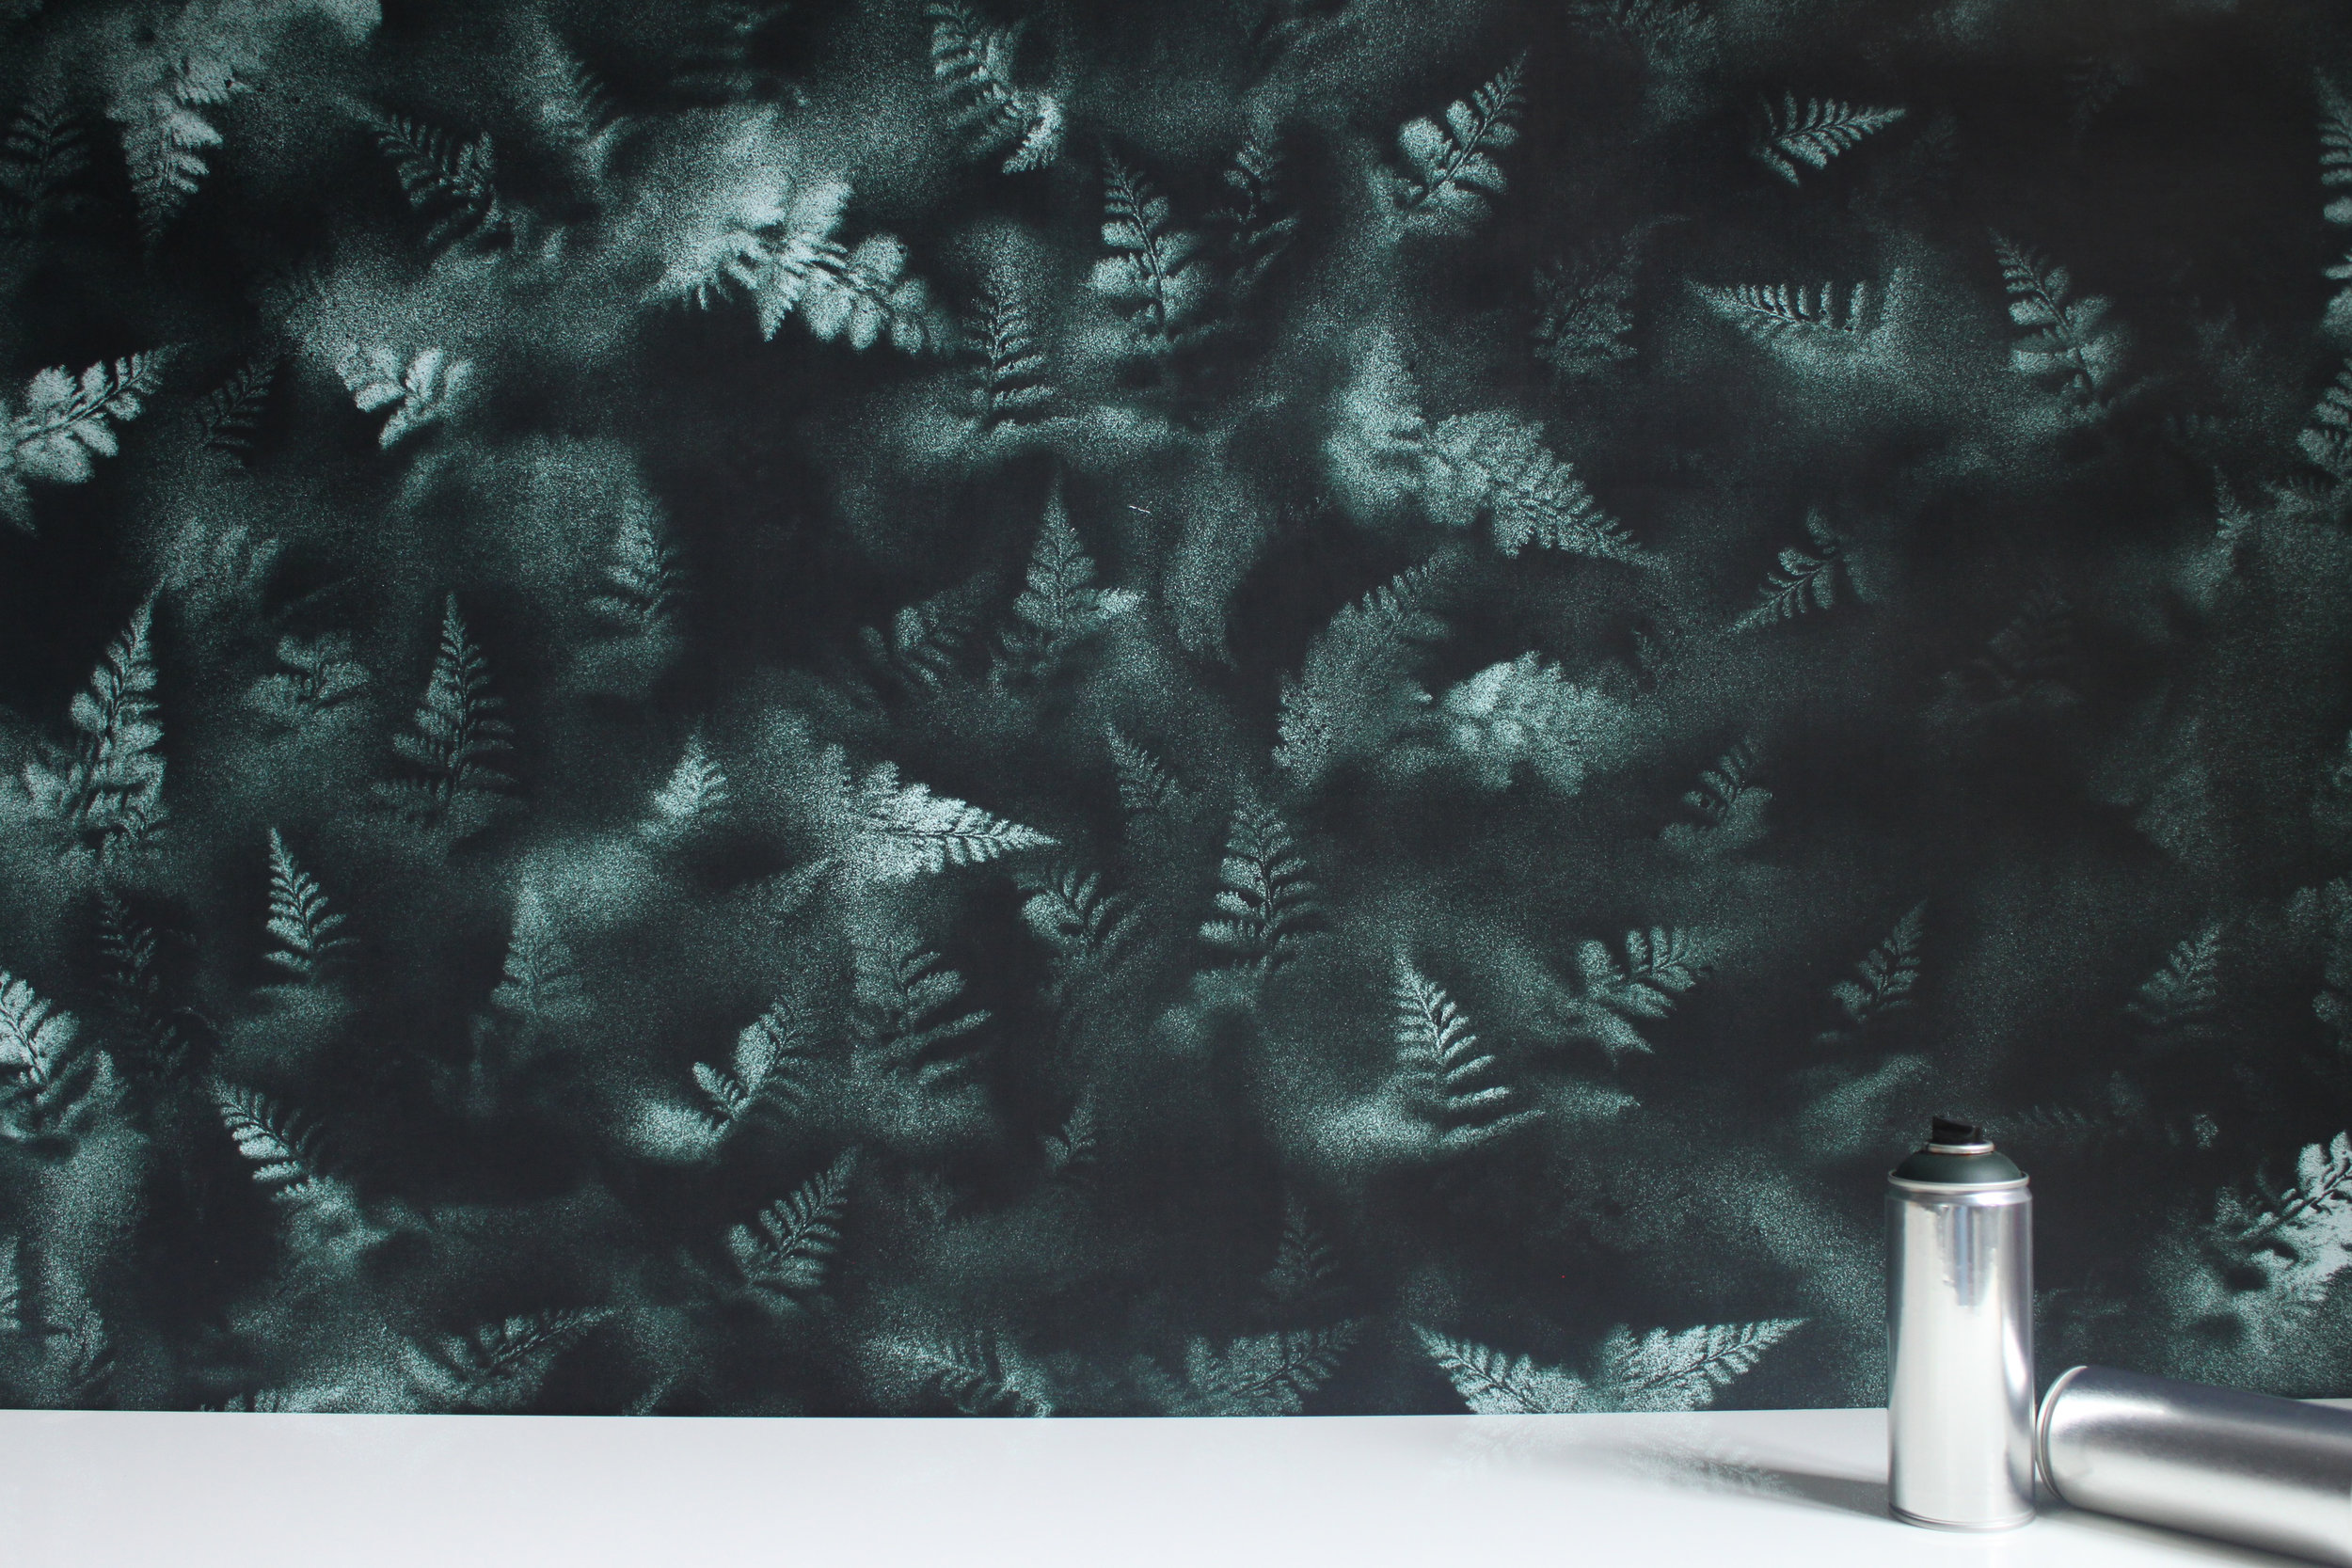 """FERN   FROM AN ORIGINAL SPRAY PAINTED ARTWORK, FERN CREATES A LAYERED, ETHEREAL BOTANICAL PORTRAIT  AVAILABLE IN FOREST GREEN OR BLACK  DIGITALLY PRINTED ON EITHER:  CLAY COATED PAPER (CLASS A FIRE RATED) - REPEAT 54"""" HORIZONTAL, 61"""" VERTICAL  SCRIM BACKED PVC FREE PAPER (CLASS A FIRE RATED - SUITED FOR HEAVY TRAFFIC)  MINIMUM ORDER 50 SF  LEAD TIME 4-6 WEEKS  $11-26/SF"""